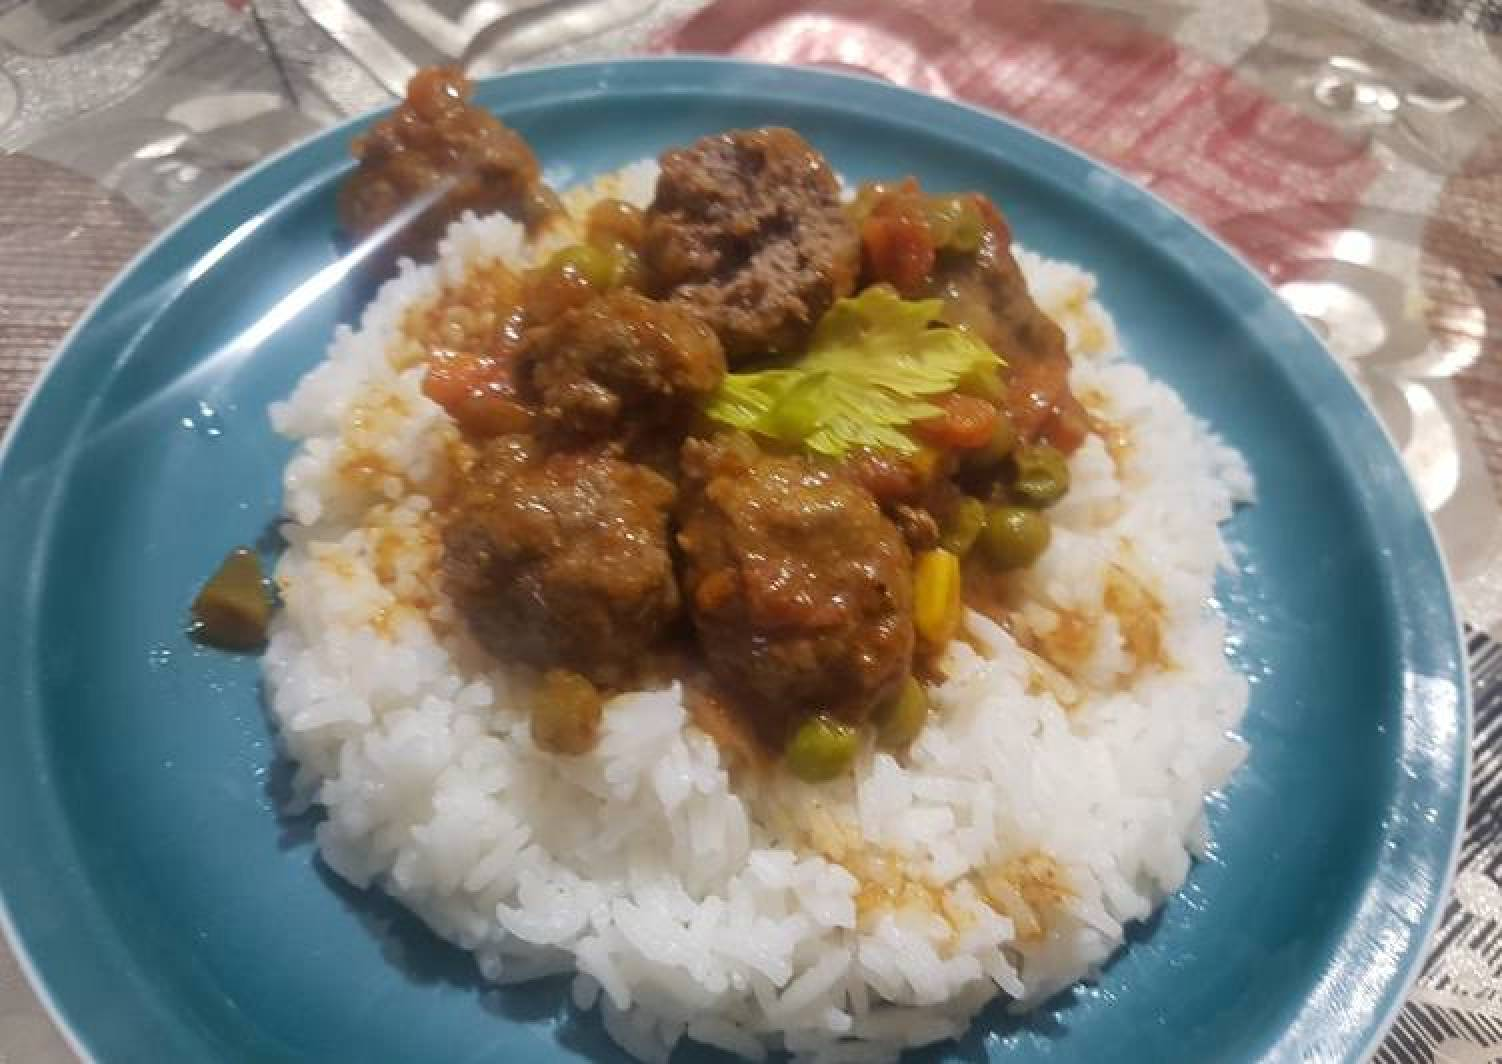 Rice and beef rounds in sauce